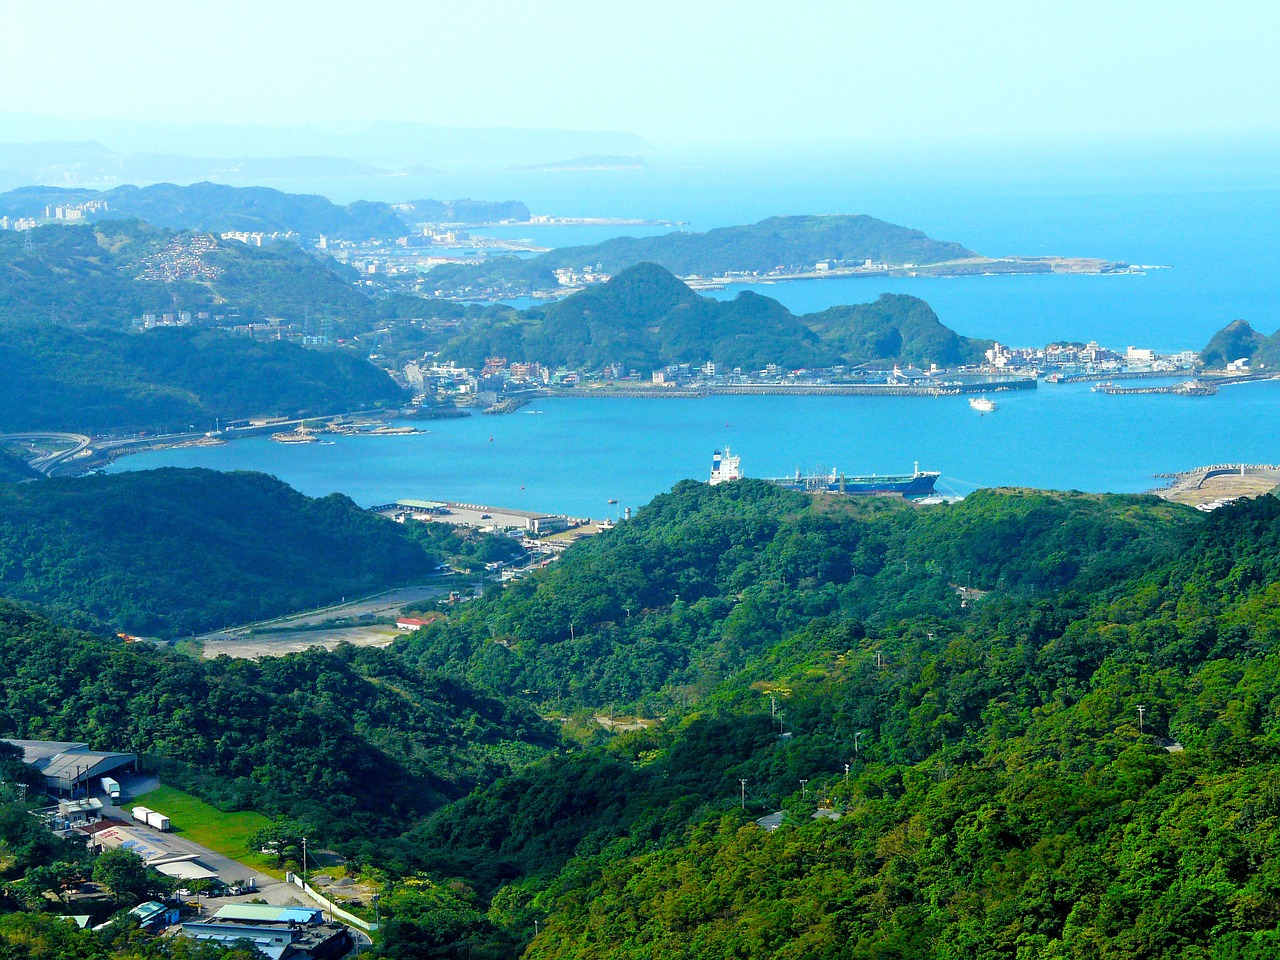 blue sea,mountain,sea,blue sky,beautiful scenery,jiufen,taipei,taiwan,free pictures, free photos, free images, royalty free, free illustrations, public domain